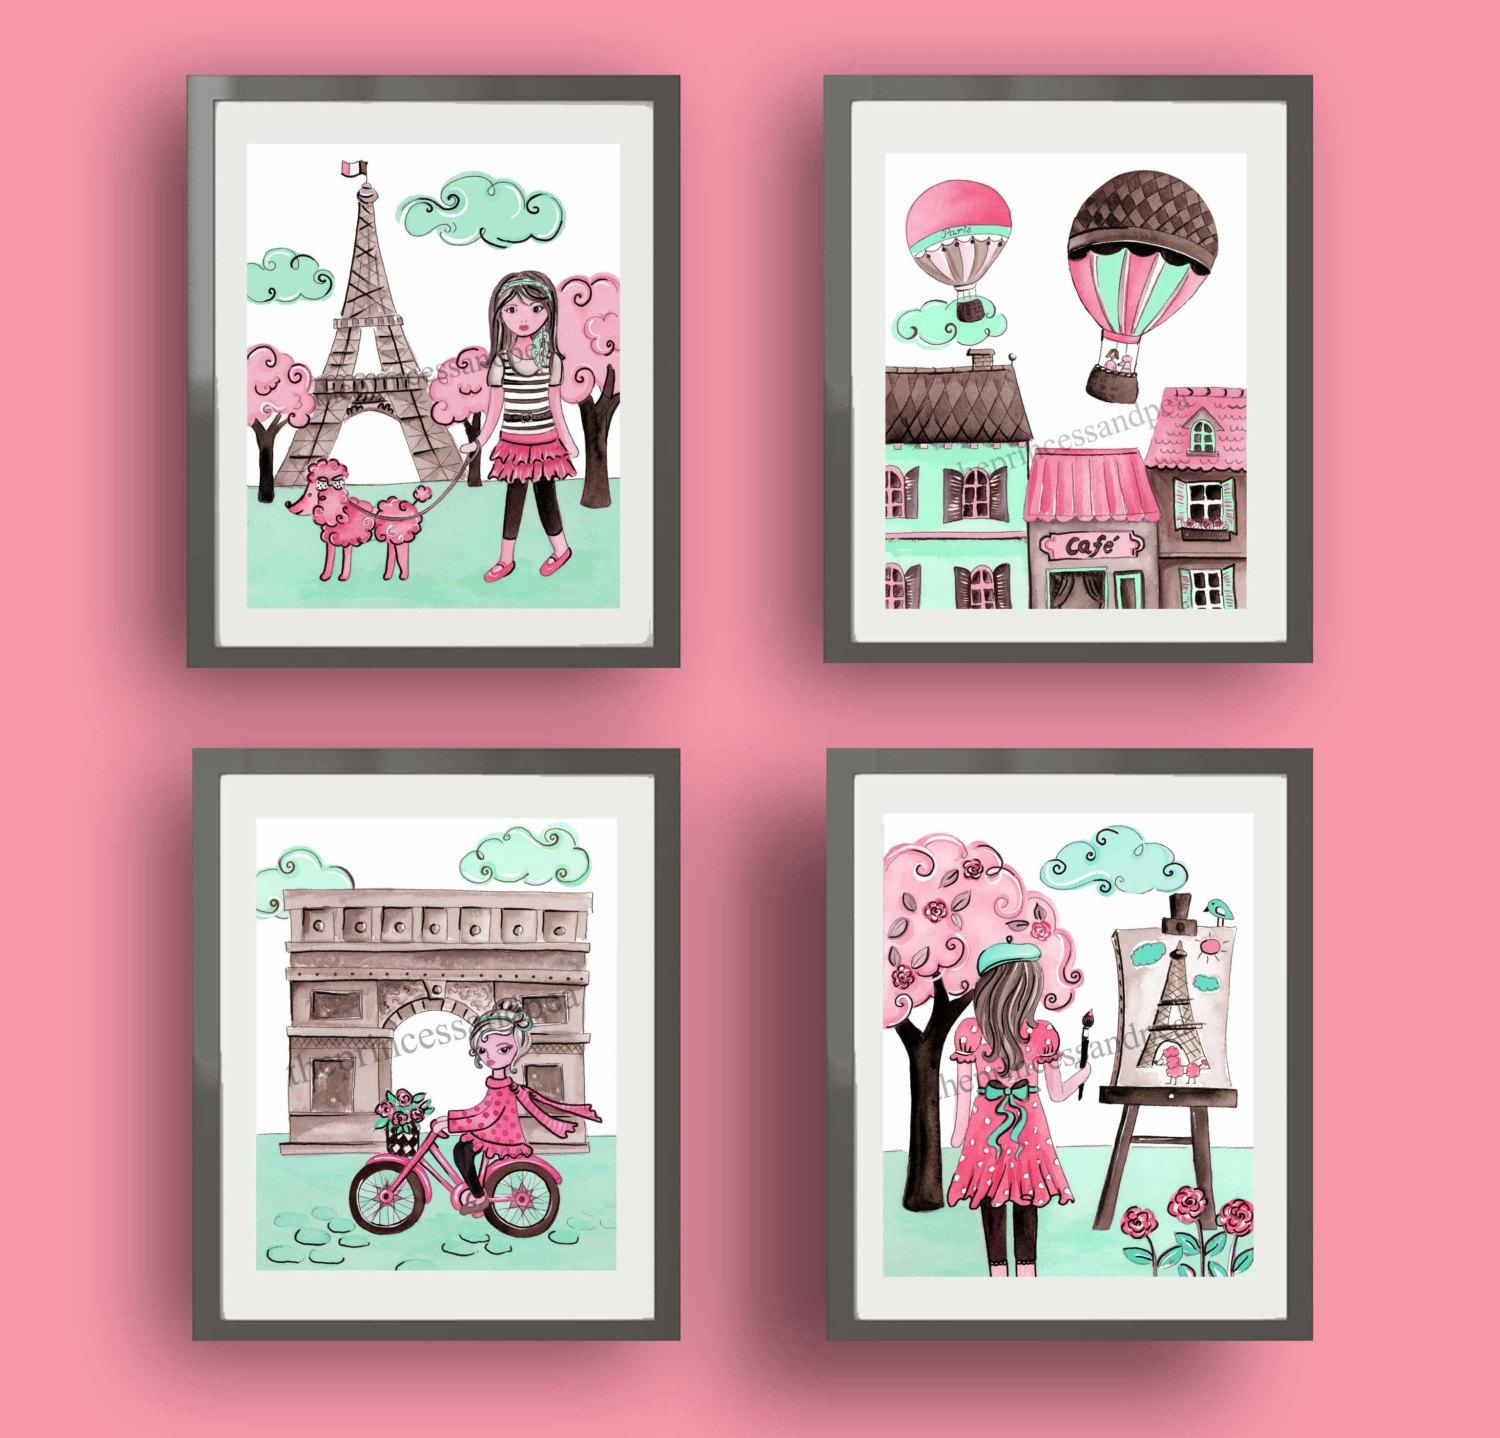 Paris Art Paris Decor Baby Nursery Art Decor Pink Mint Regarding Paris Theme Nursery Wall Art (View 3 of 20)